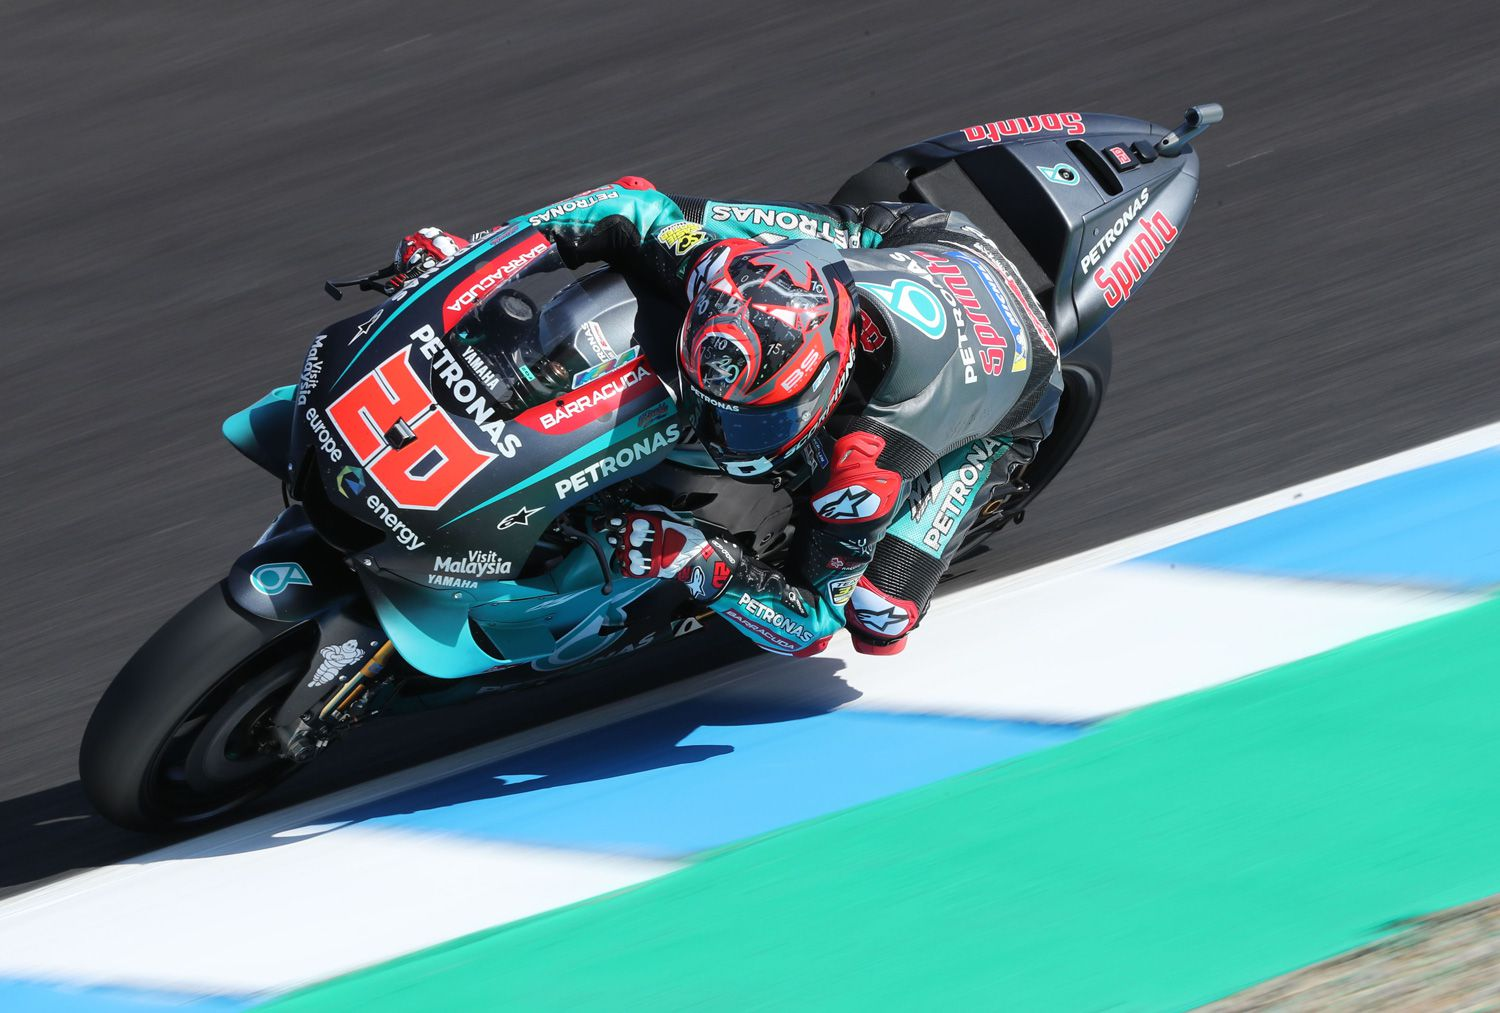 Quartararo is set to receive top-spec factory machines at his Petronas Sepang Racing Team during the 2020 season, then moving to the factory squad next year.